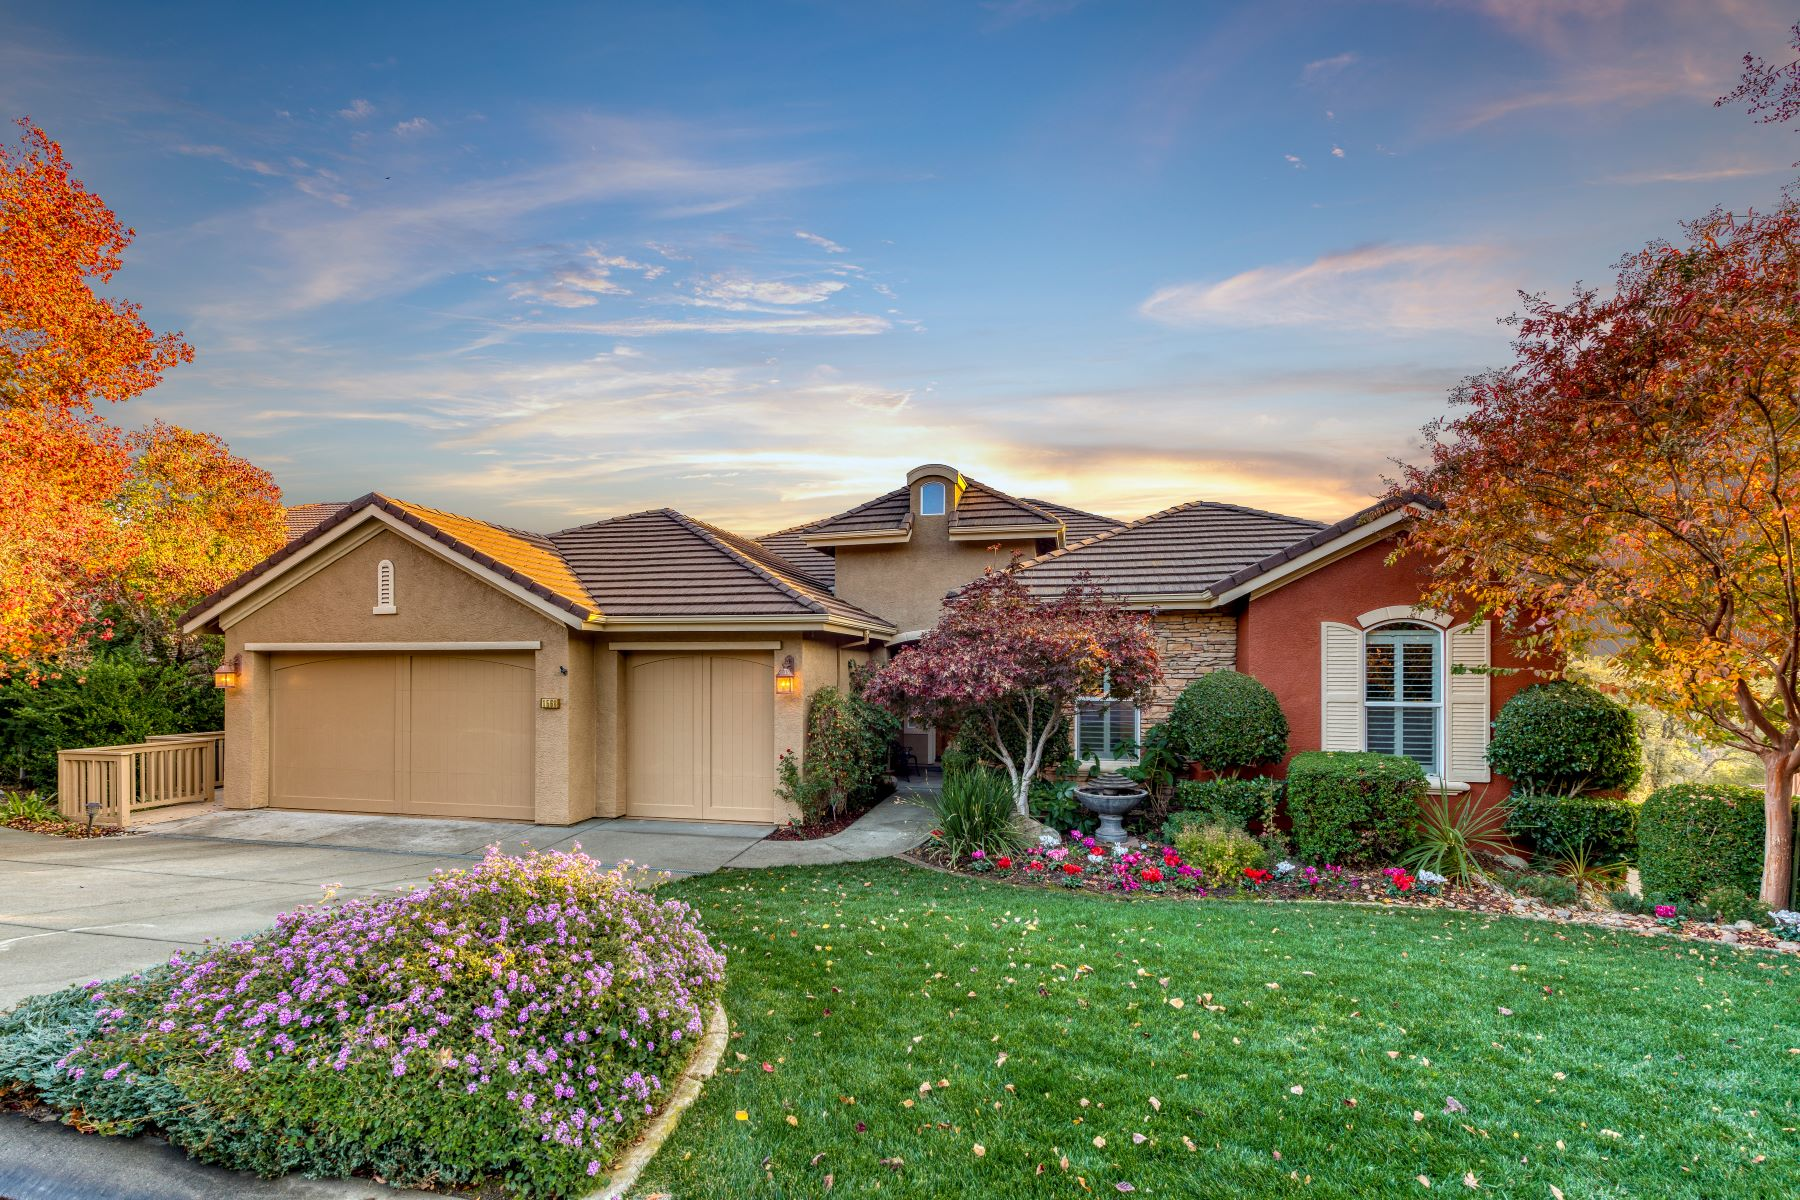 Single Family Homes for Active at 1568 Oak Hill Way,Roseville, CA 95661 1568 Oak Hill Way Roseville, California 95661 United States